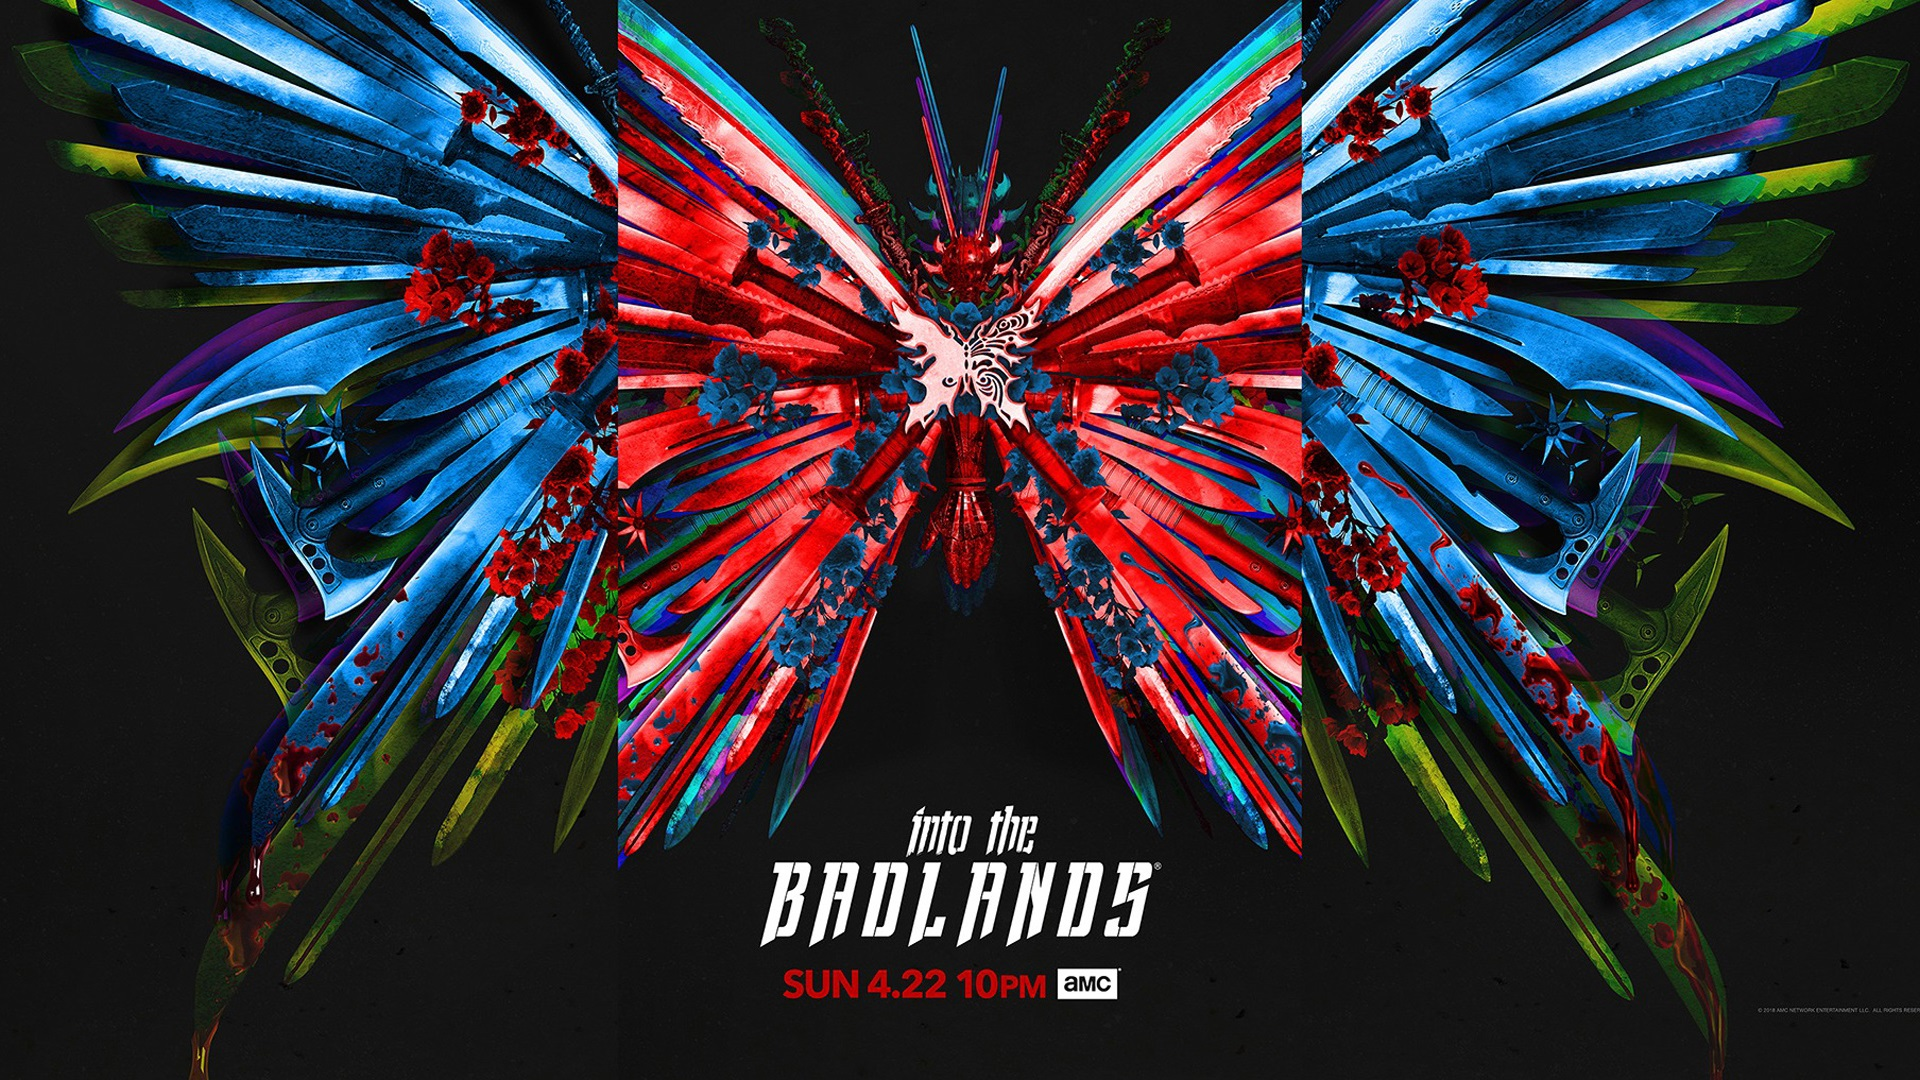 Wallpaper Into The Badlands Season 3 1920x1080 Full HD Picture Image